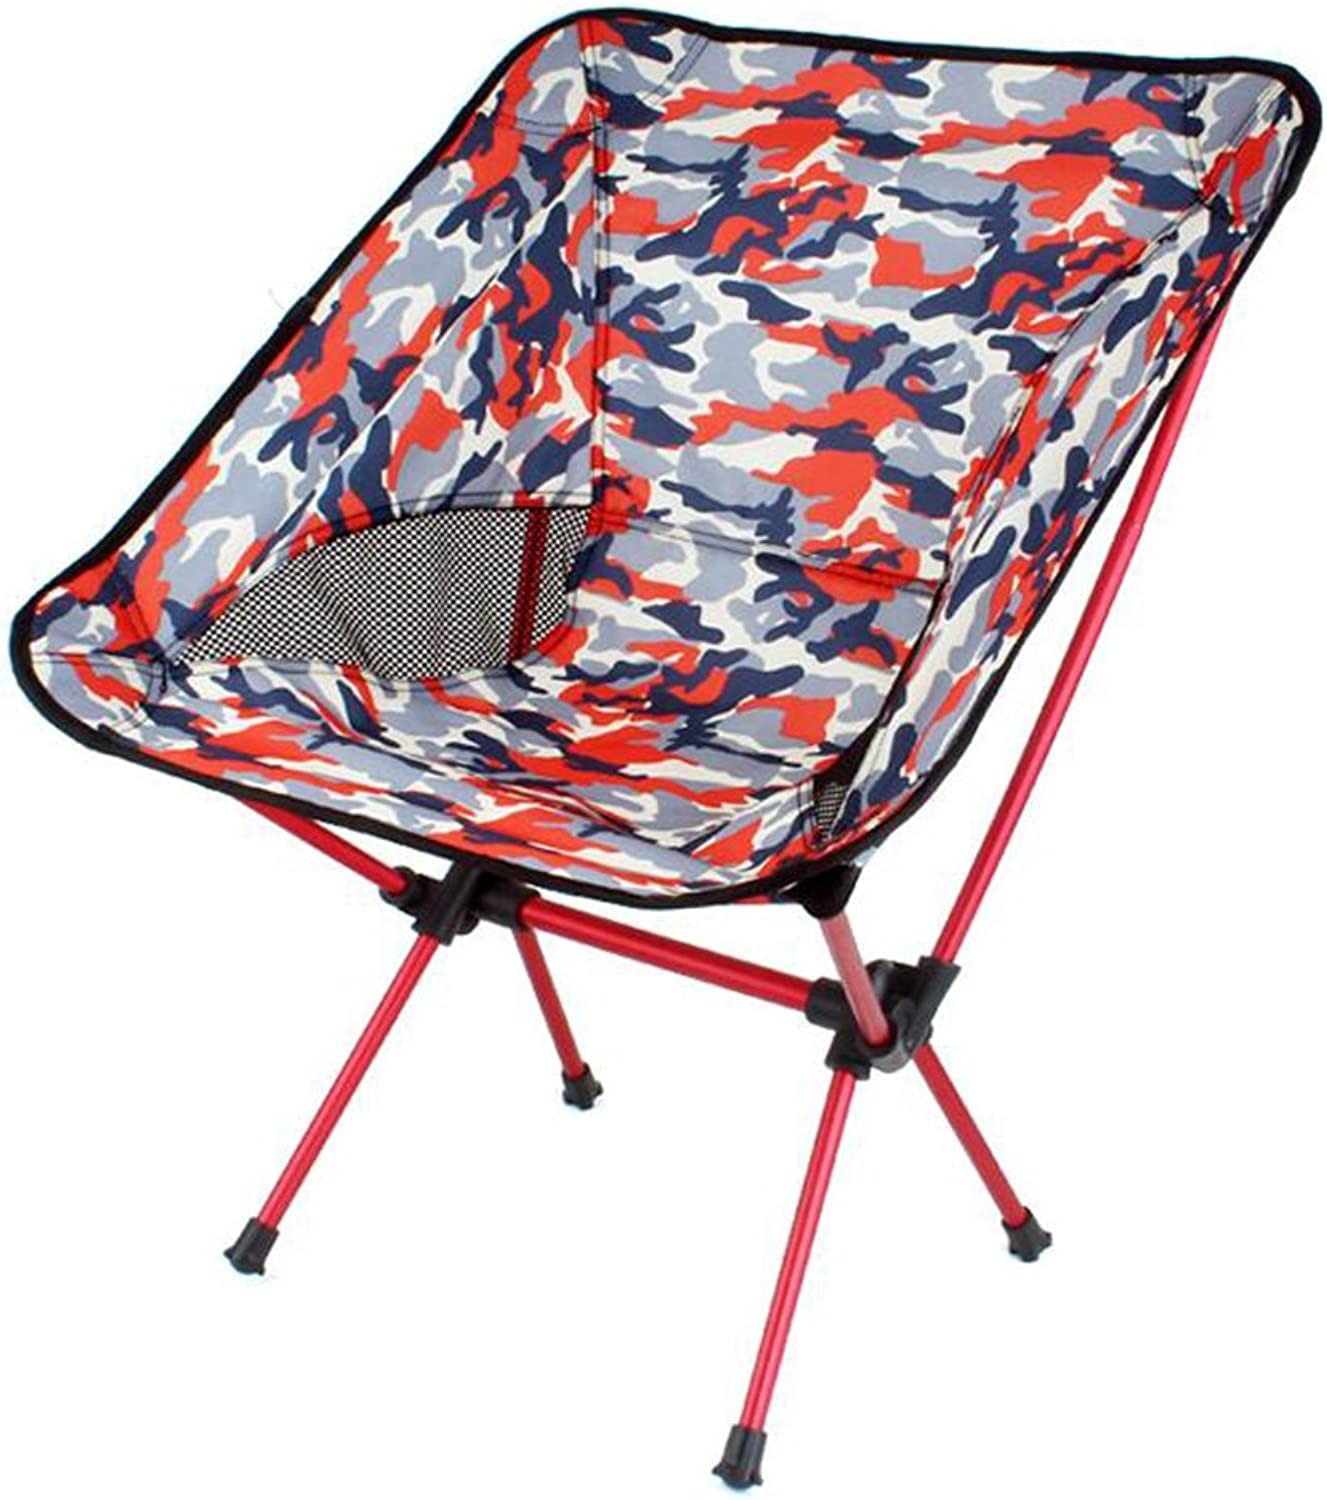 Folding Chairs Tatami Outdoor Camping Folding Chair Portable Moon Chair Fishing Chair backrest Drawing Chair Barbecue Stool (color   Red)